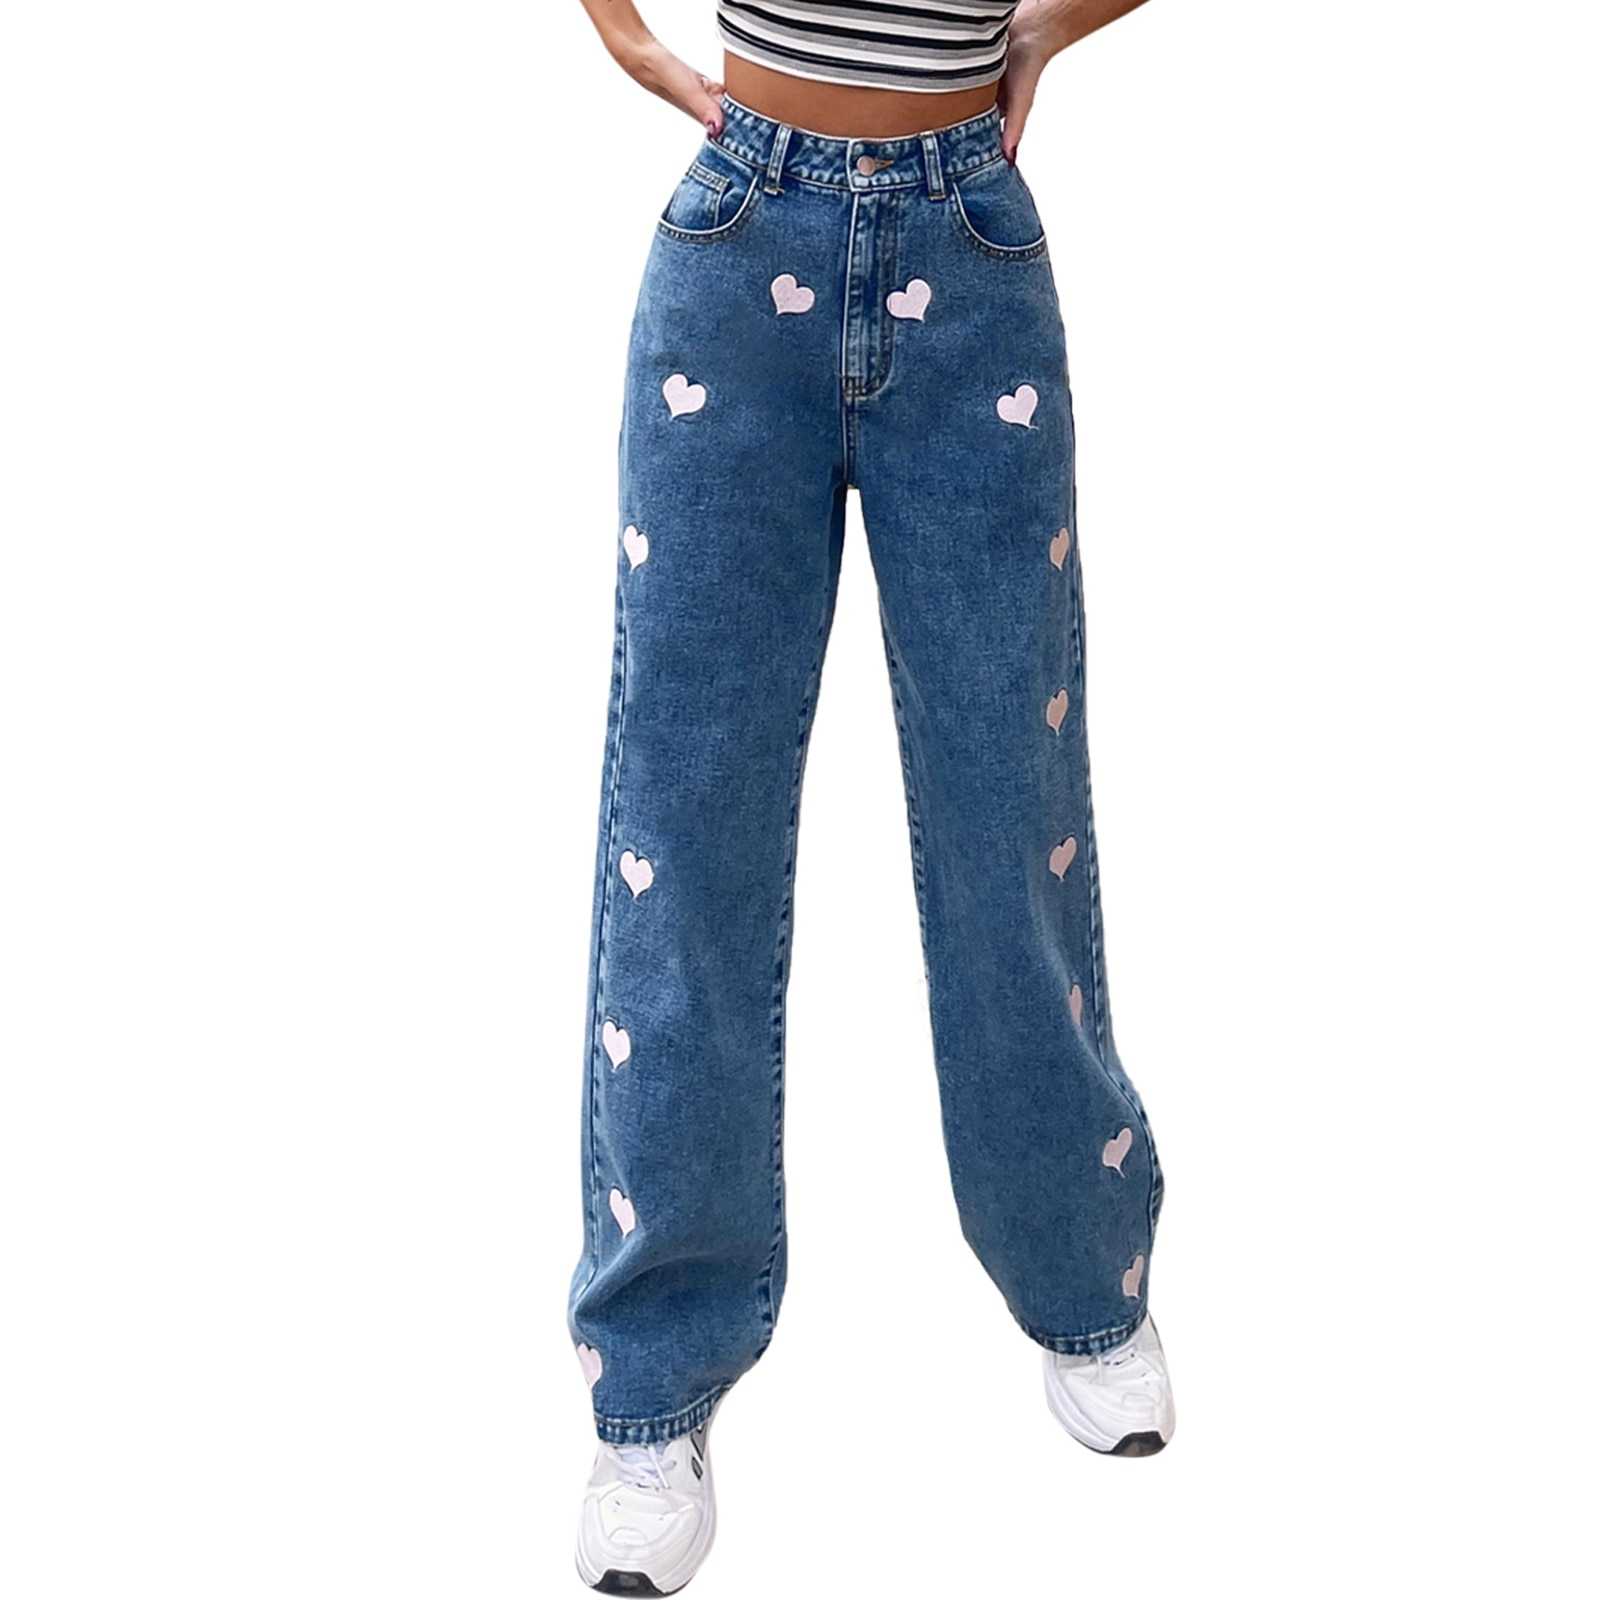 Heart Print Black Casual Jeans Pants for Women Straight High Waist Denim Long Trousers Ladies Harajuku Spring Autumn